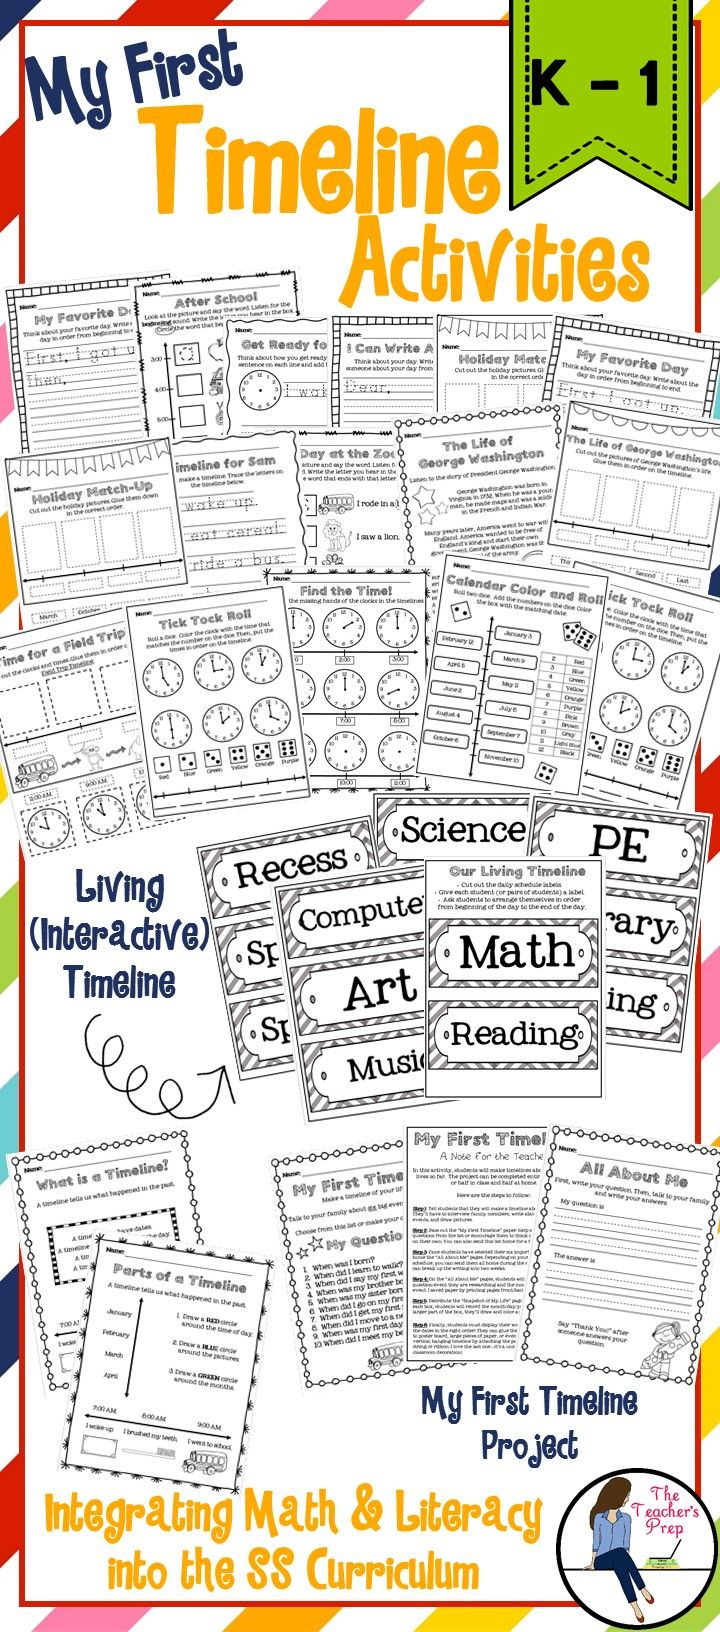 Timeline Activities For Math And Literacy Standards Back To School